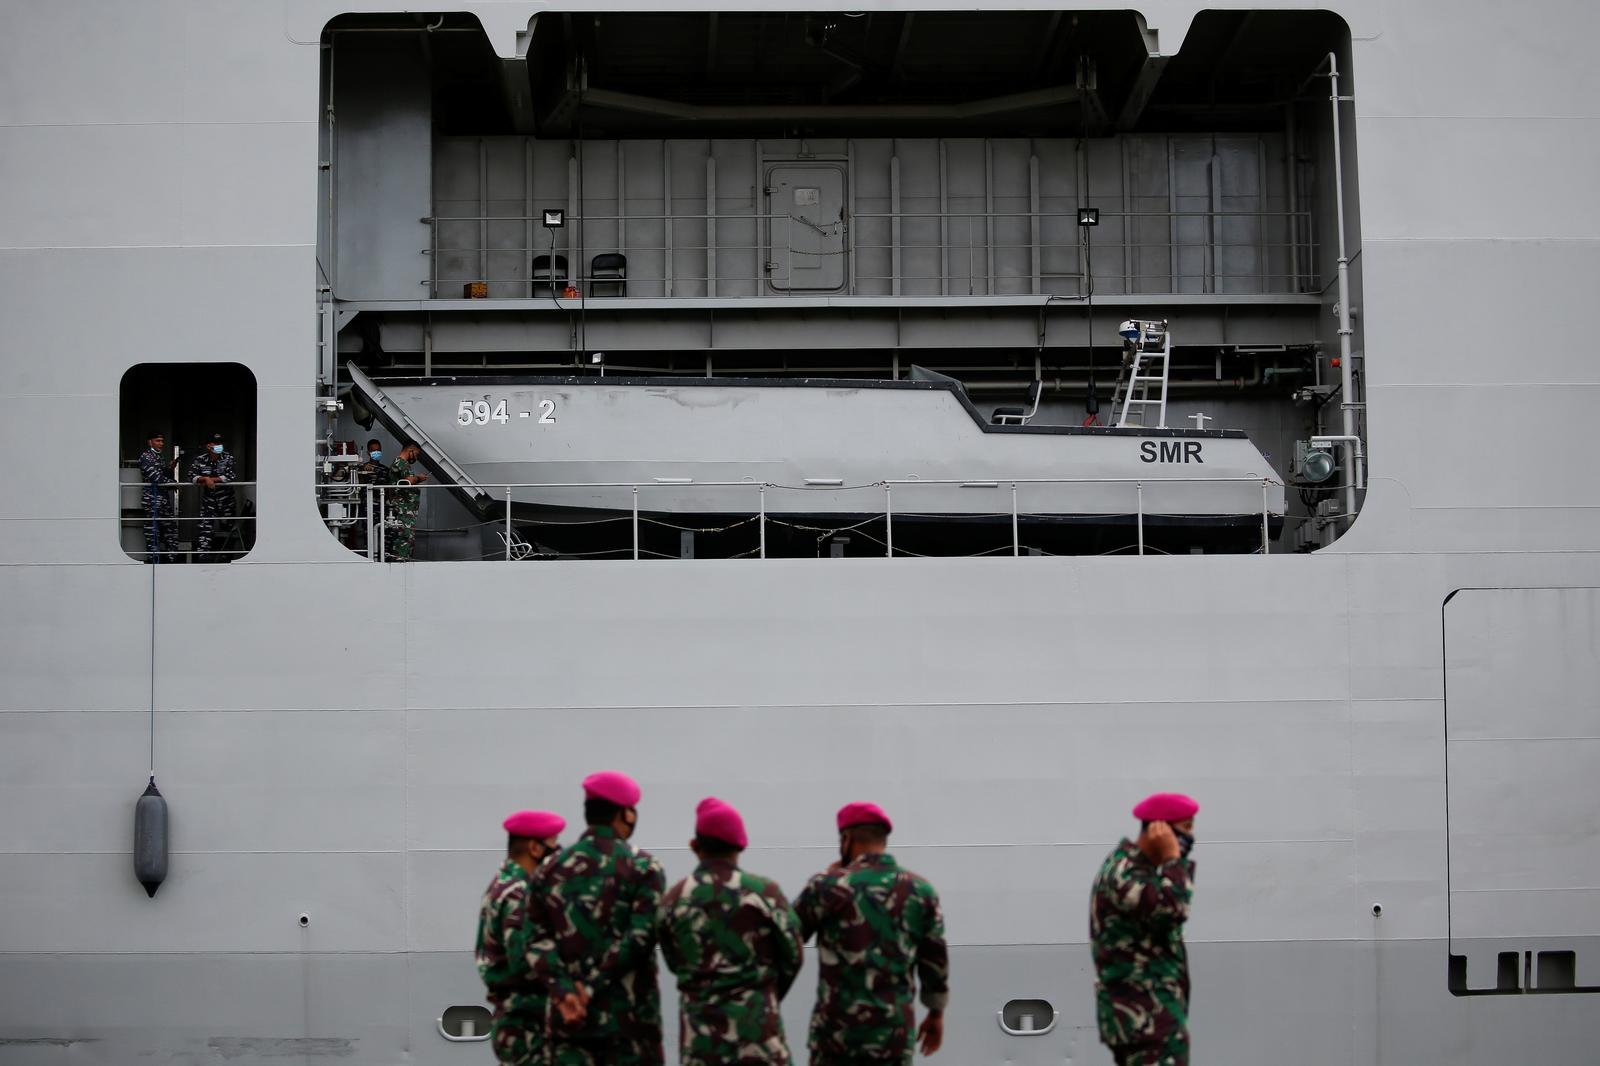 Indonesian Navy sailors are seen on the KRI Semarang as it is docking and preparing to continue rescue process for Sriwijaya Air flight SJ 182, which crashed to the sea, at Tanjung Priok port in Jakarta, Indonesia, January 11, 2021. Photo: Reuters